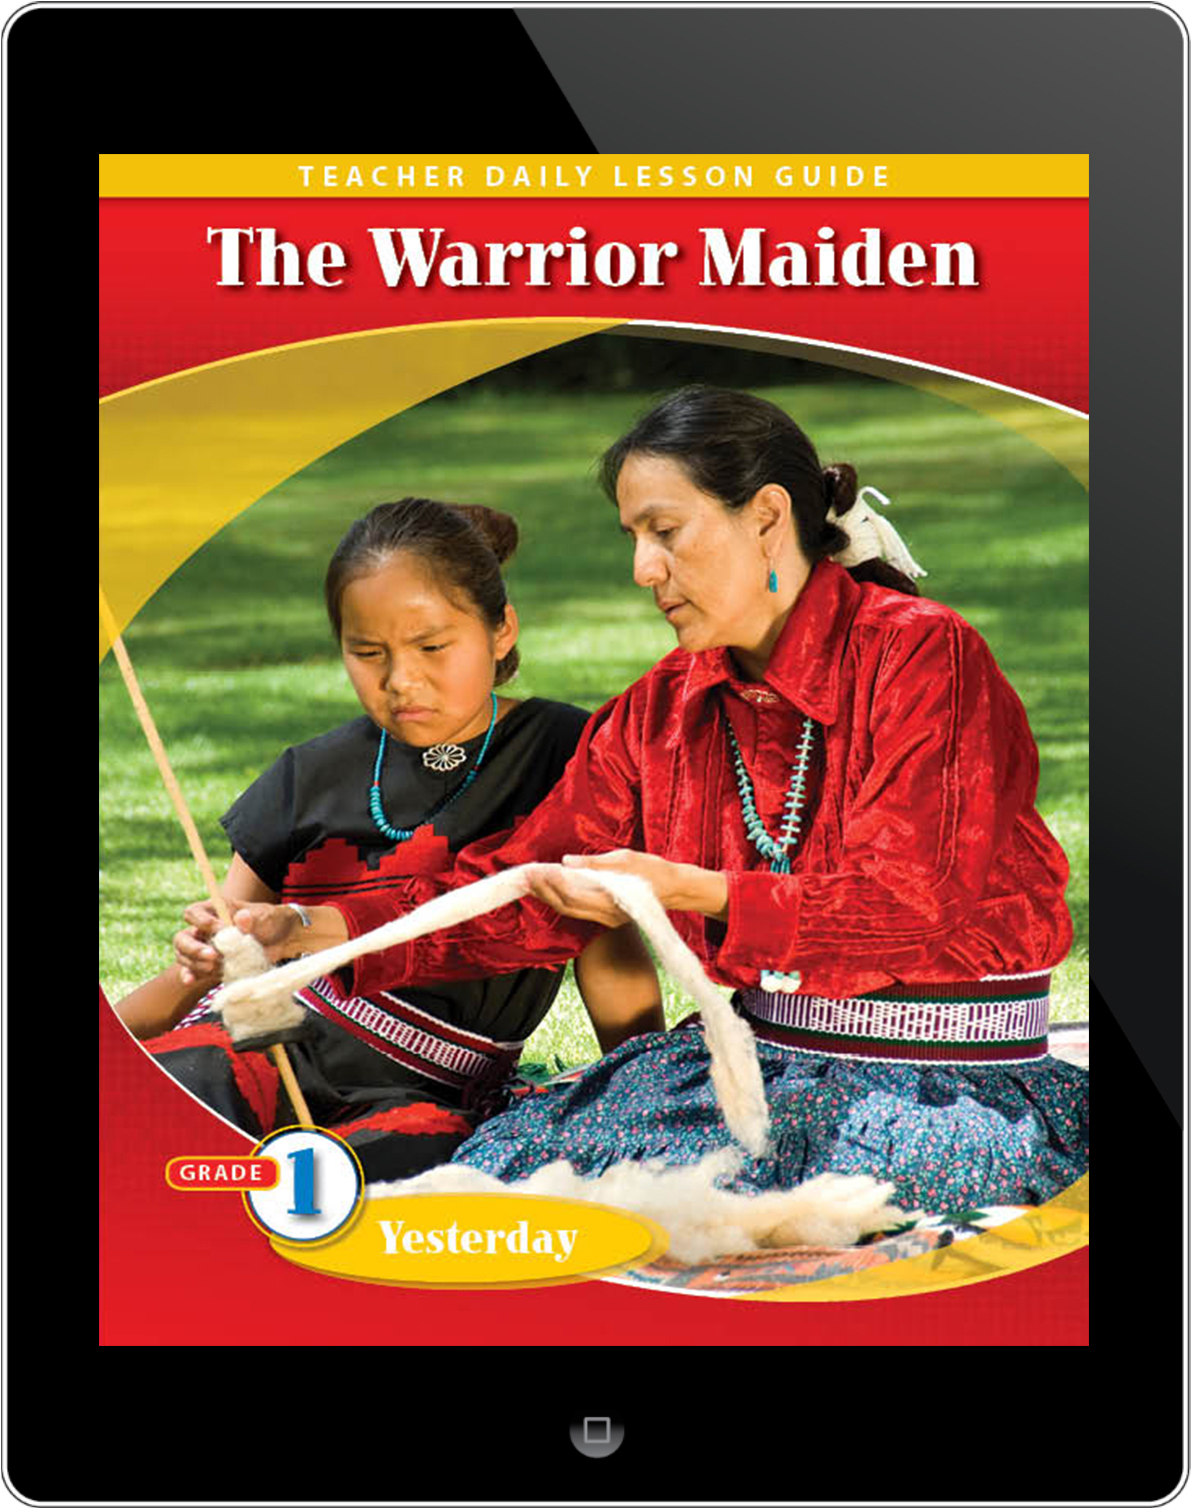 Pathways2.0 Grade 1 Yesterday Unit: Warrior Maiden Daily Lesson Guide 5 Year License